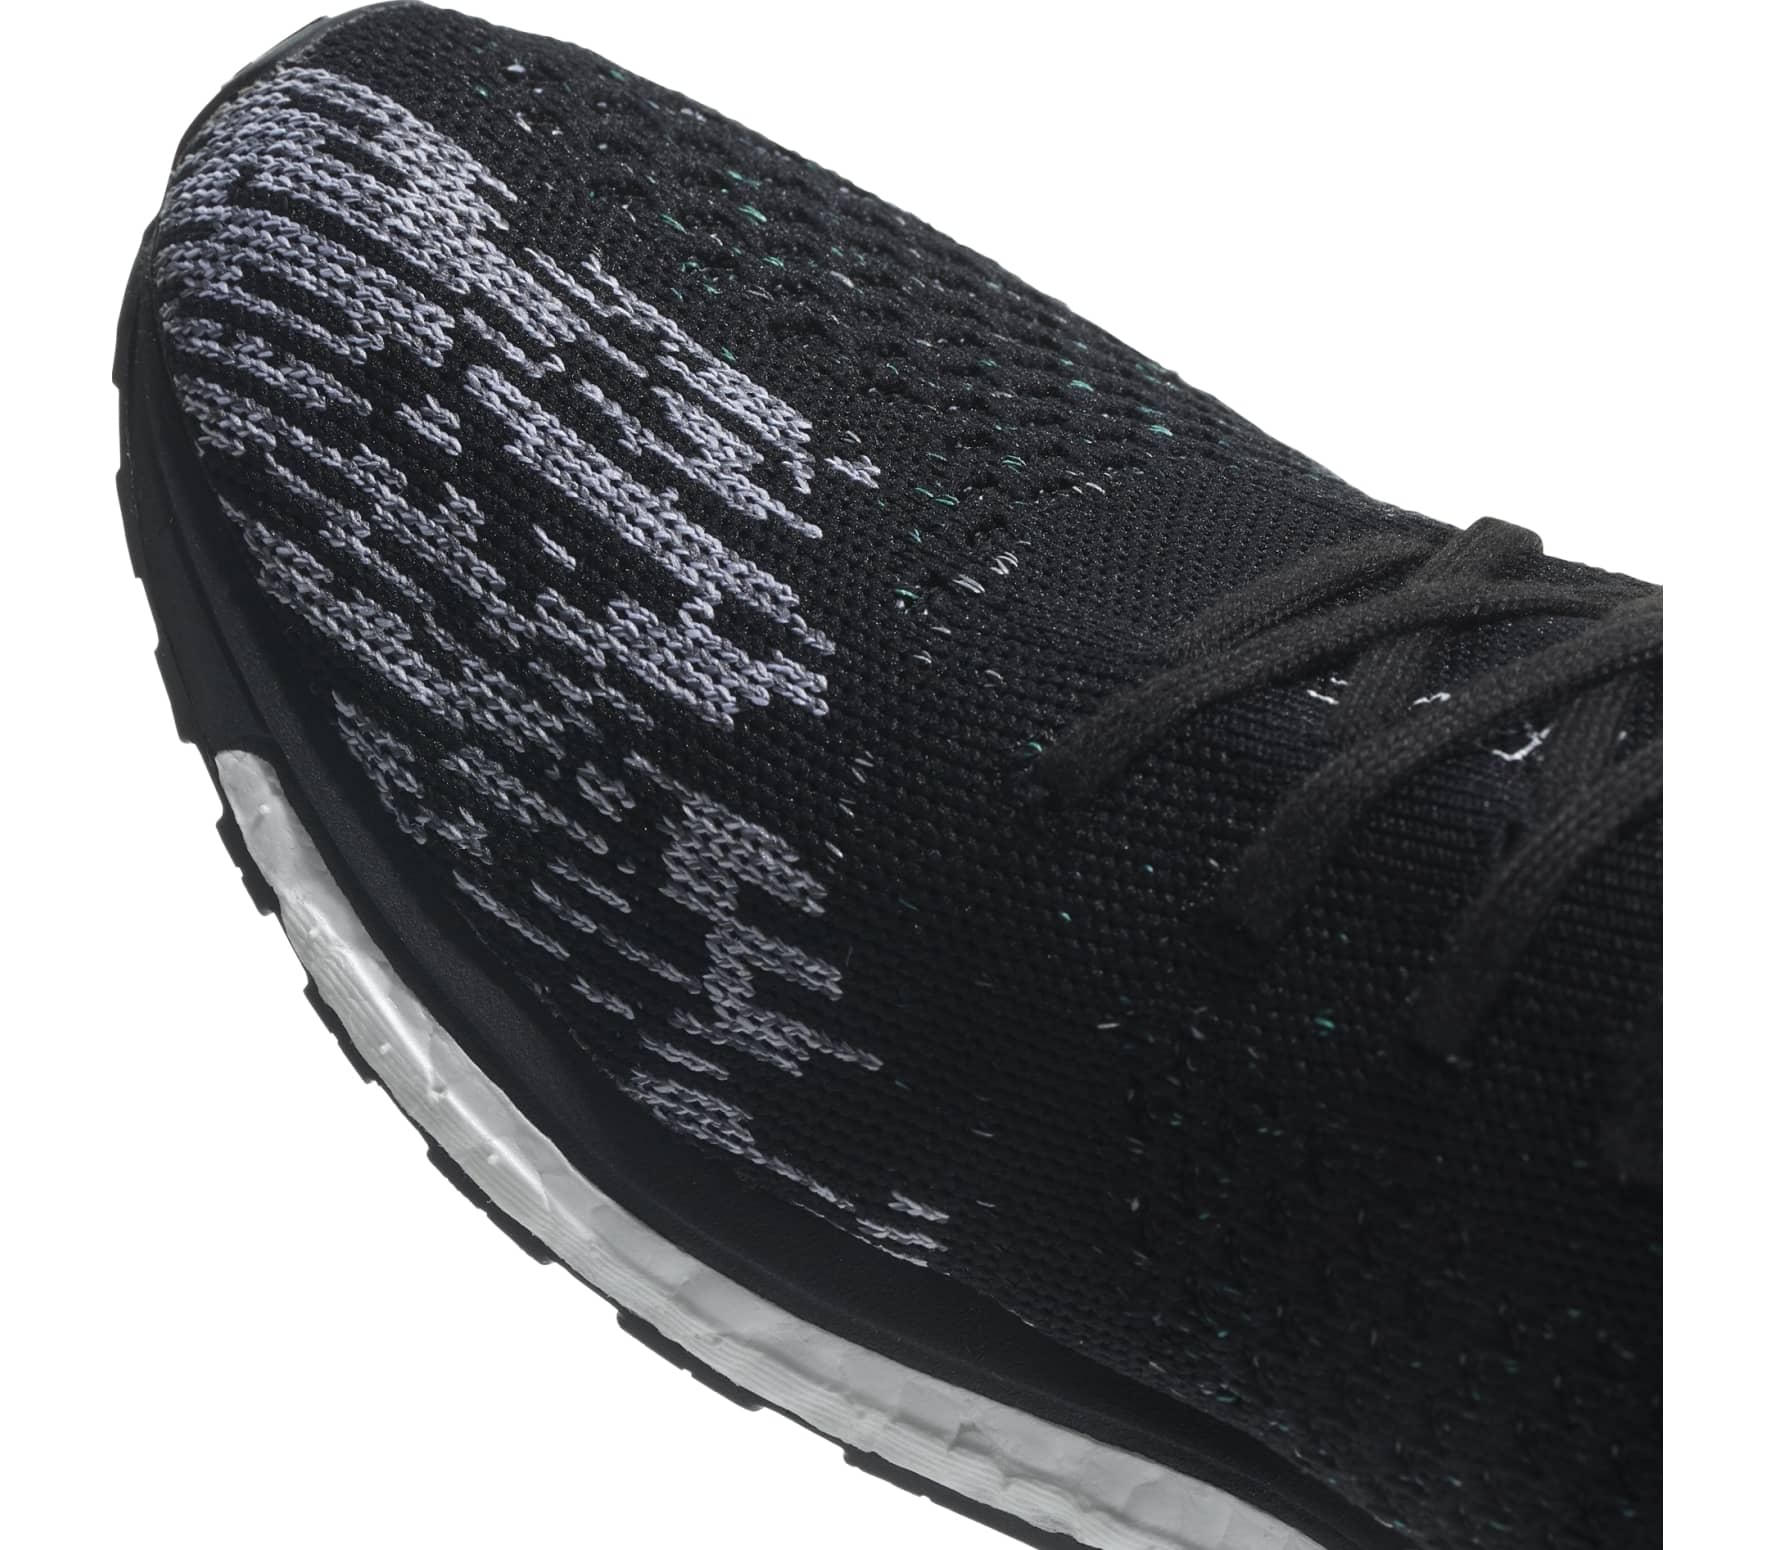 check out 92152 ae416 Adidas - adizero prime LTD Unisex running shoes (black)